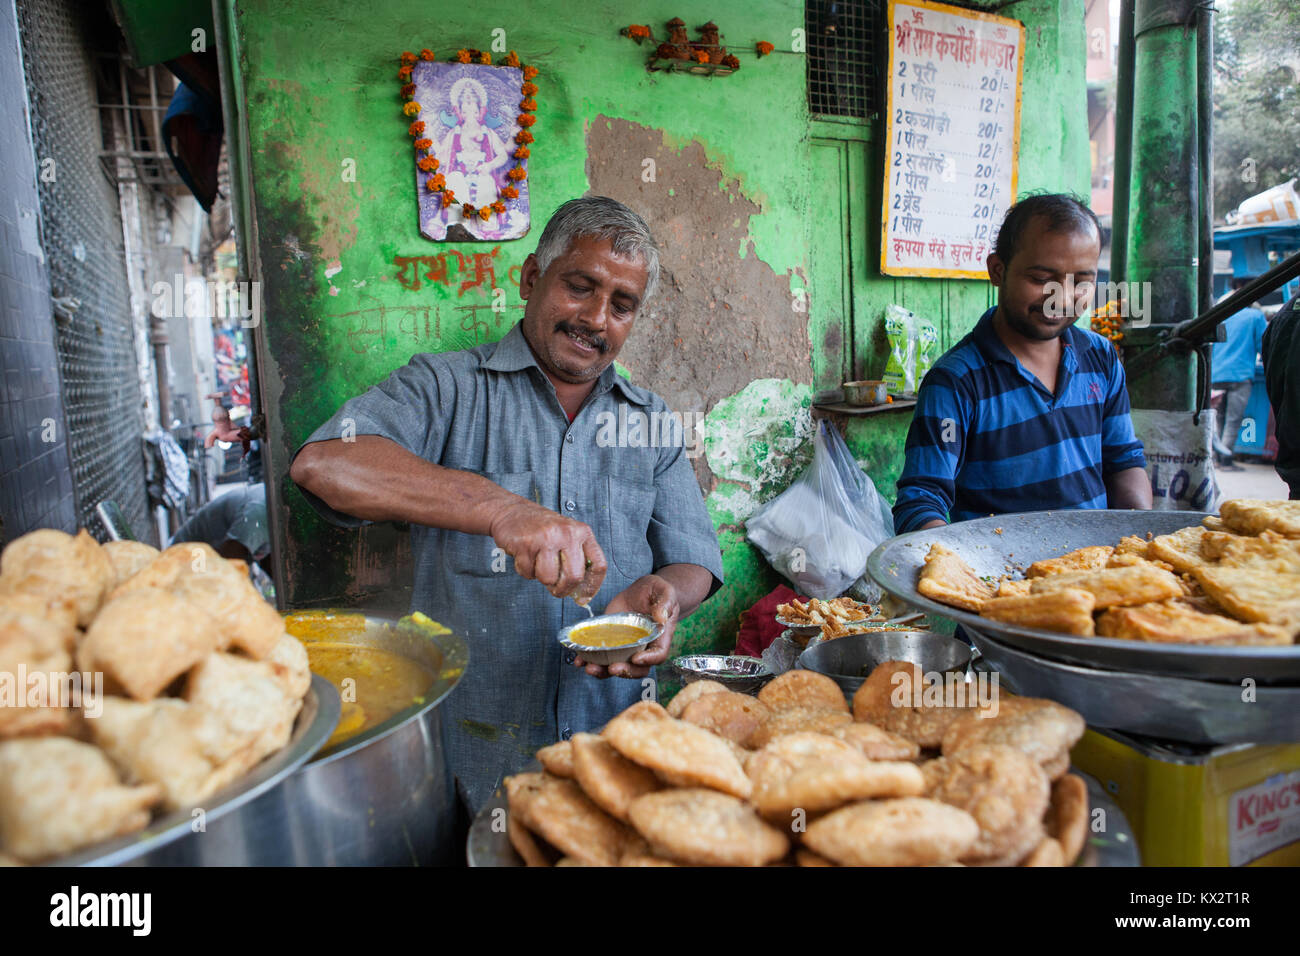 A vendor serves a plate of kachori at a food hotel in the old city of Delhi, India - Stock Image